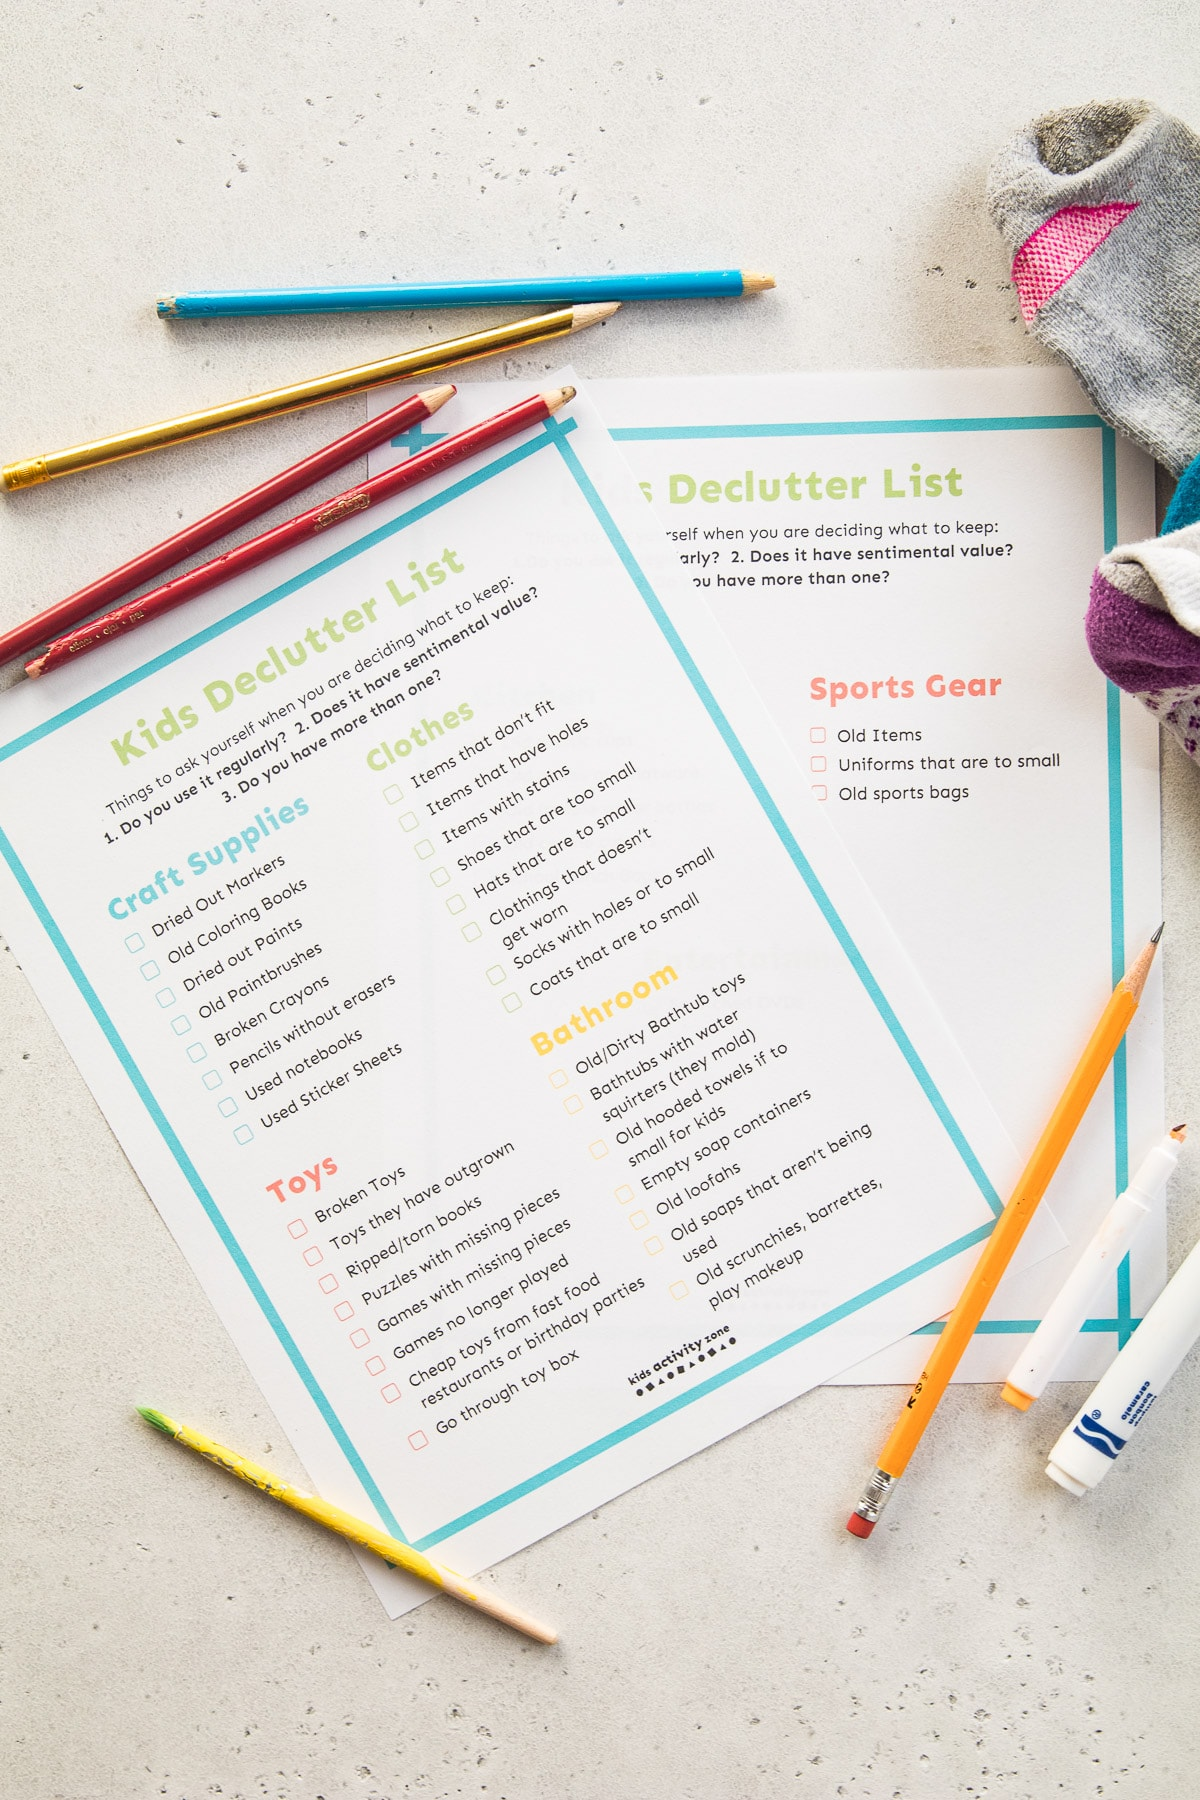 Kids Declutter Checklist on light background with old markers, pencils and socks